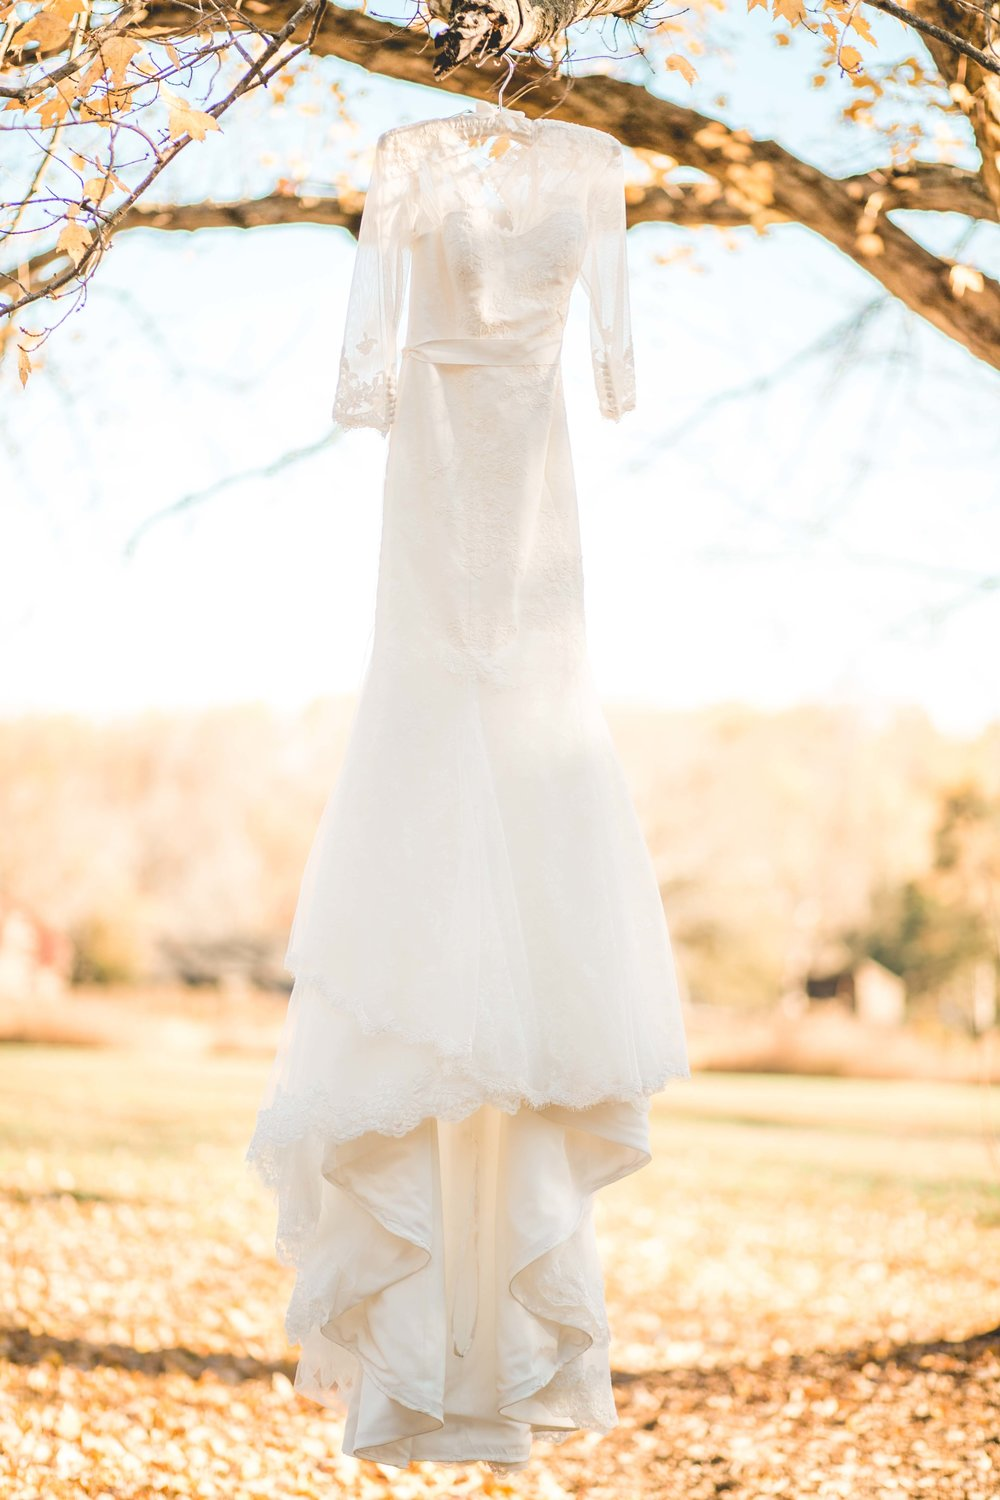 1.     NEW HOPE OUTDOOR WEDDING PHOTOS | ELEGANT PHOTOGRAPHY